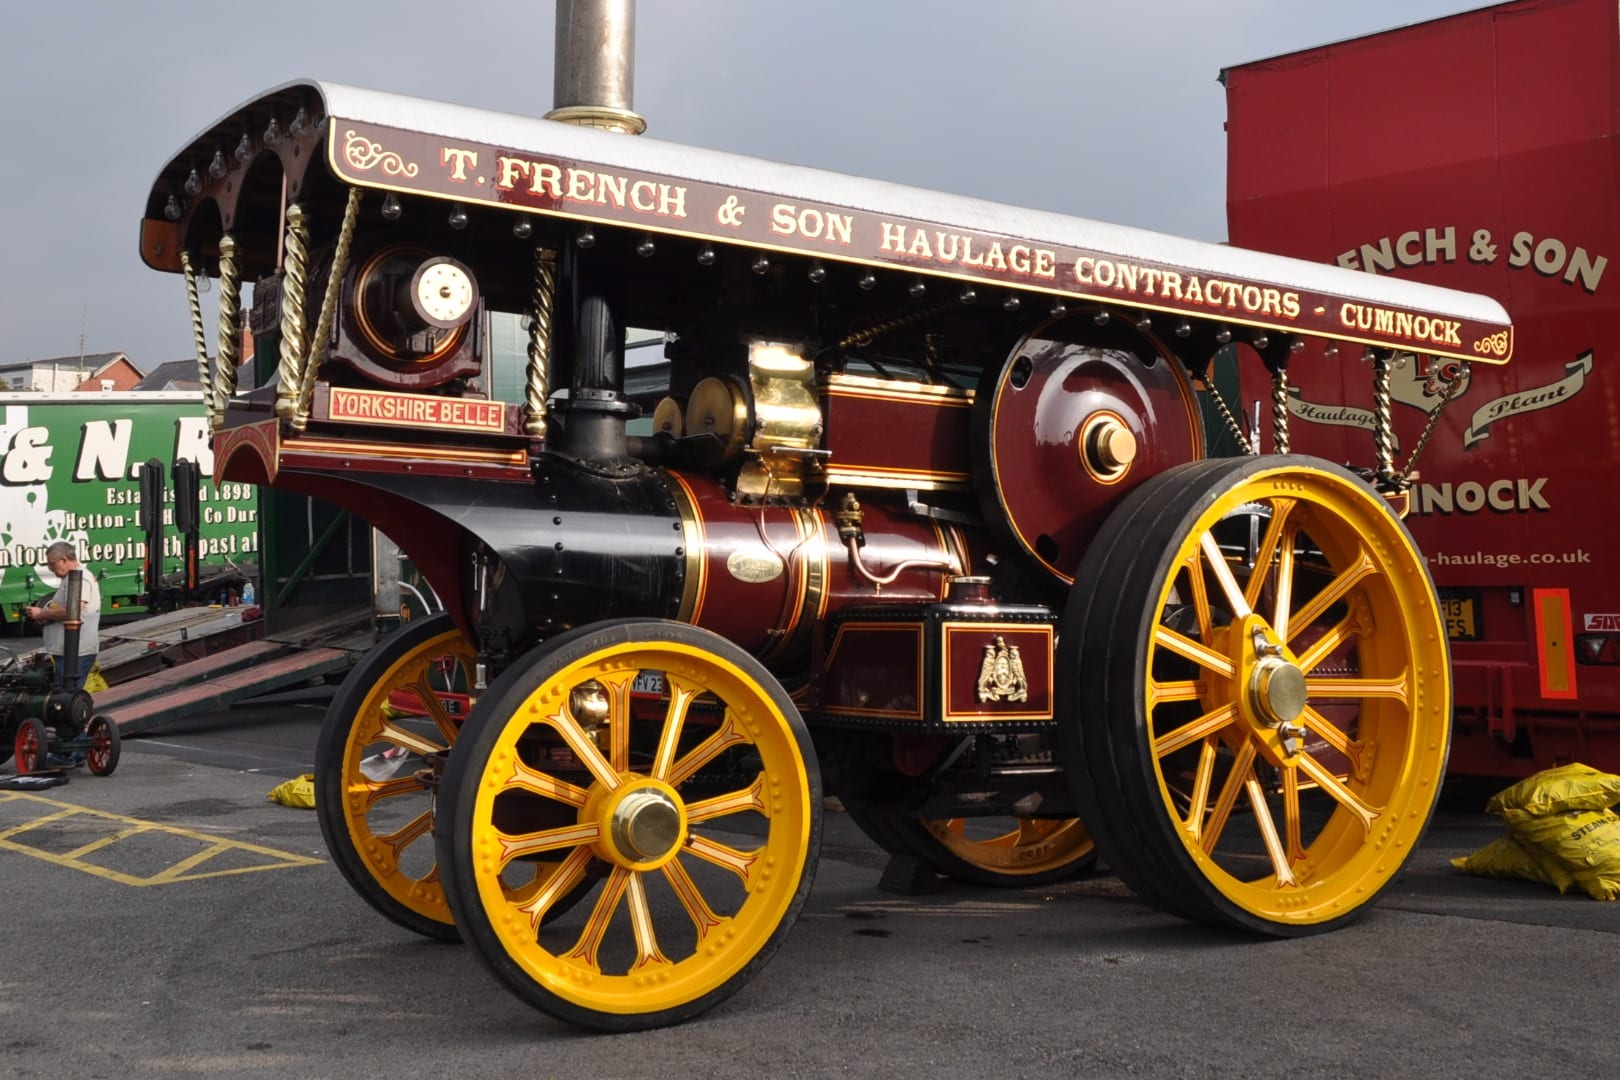 Fowler Showman's Engine No. 14321, dating from 1916 , named 'YORKSHIRE BELLE'